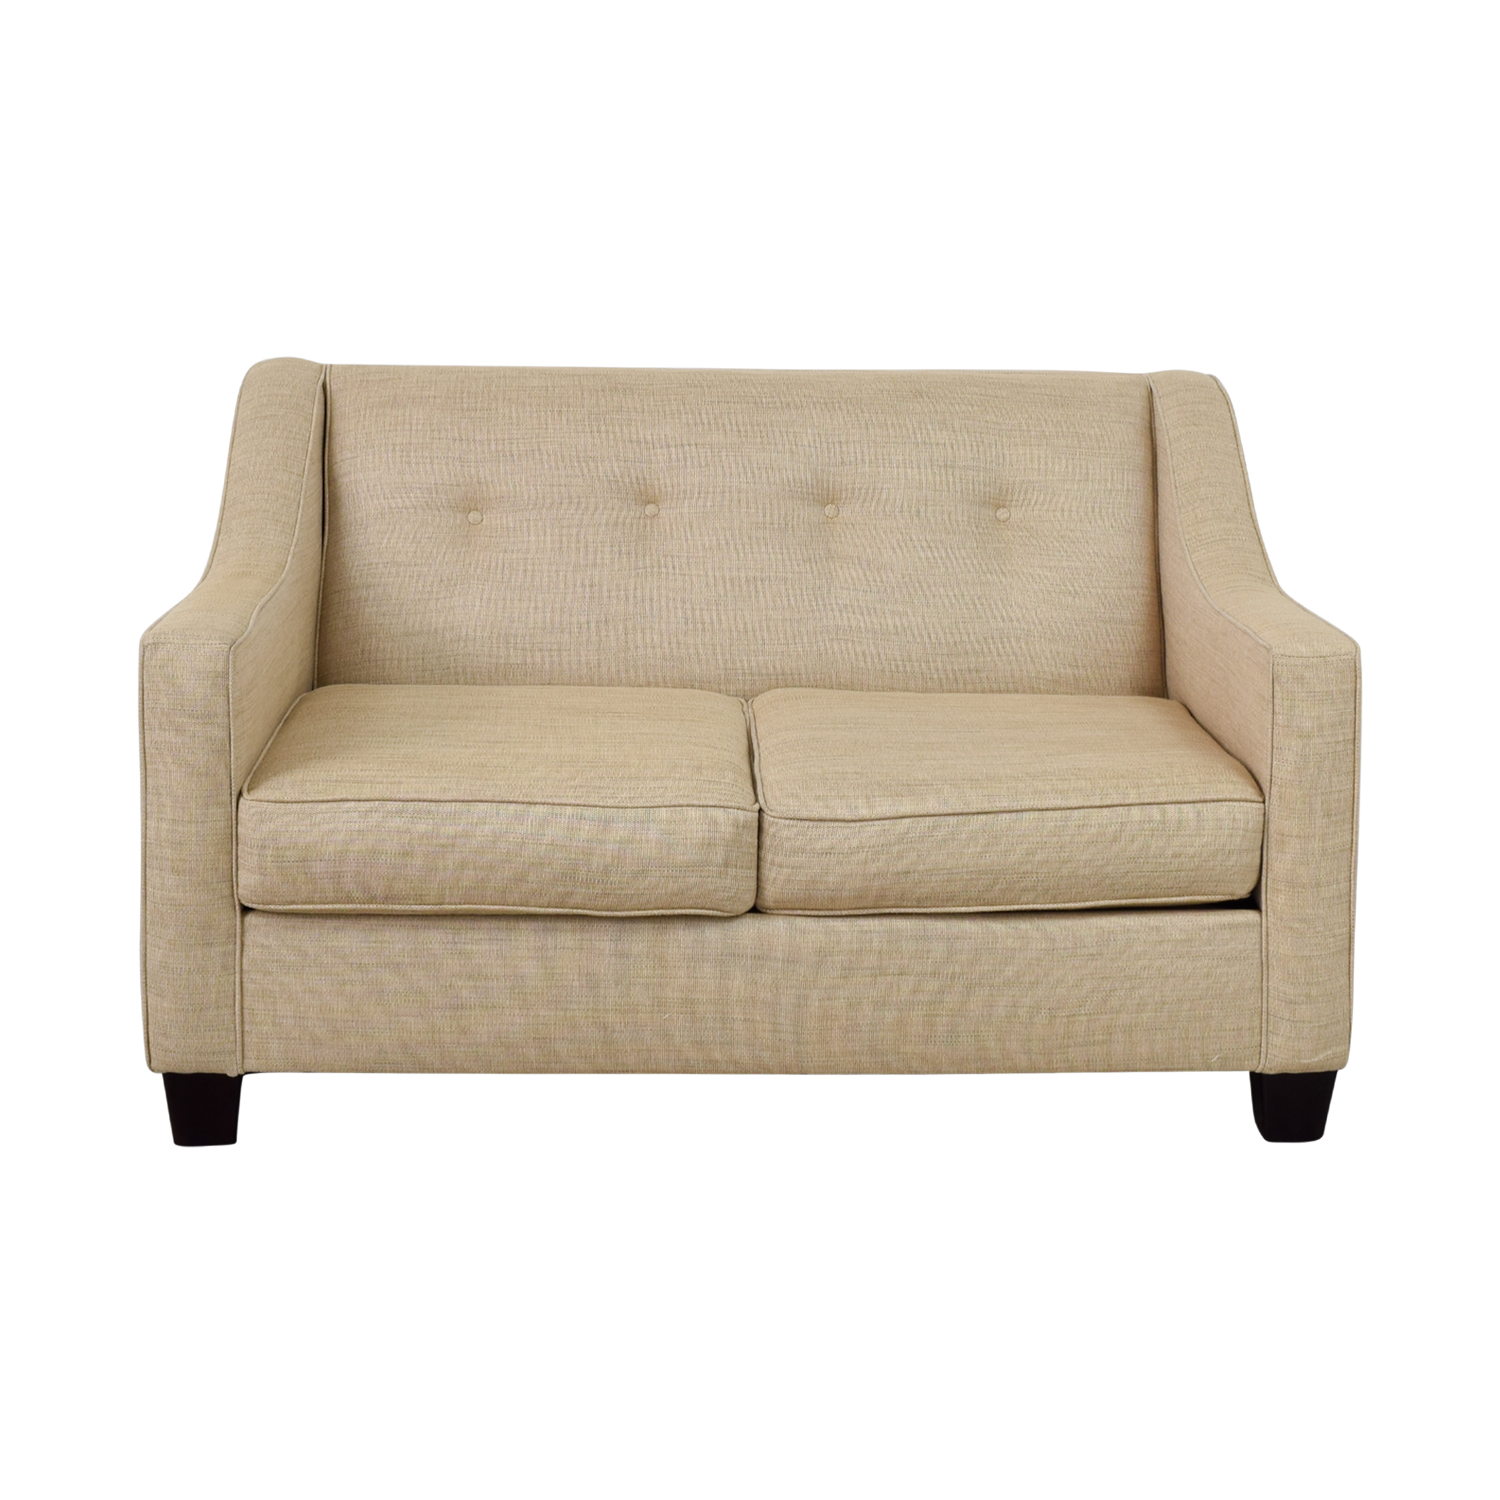 shop Bob's Furniture Caleb Tan Tufted Back Loveseat Bob's Furniture